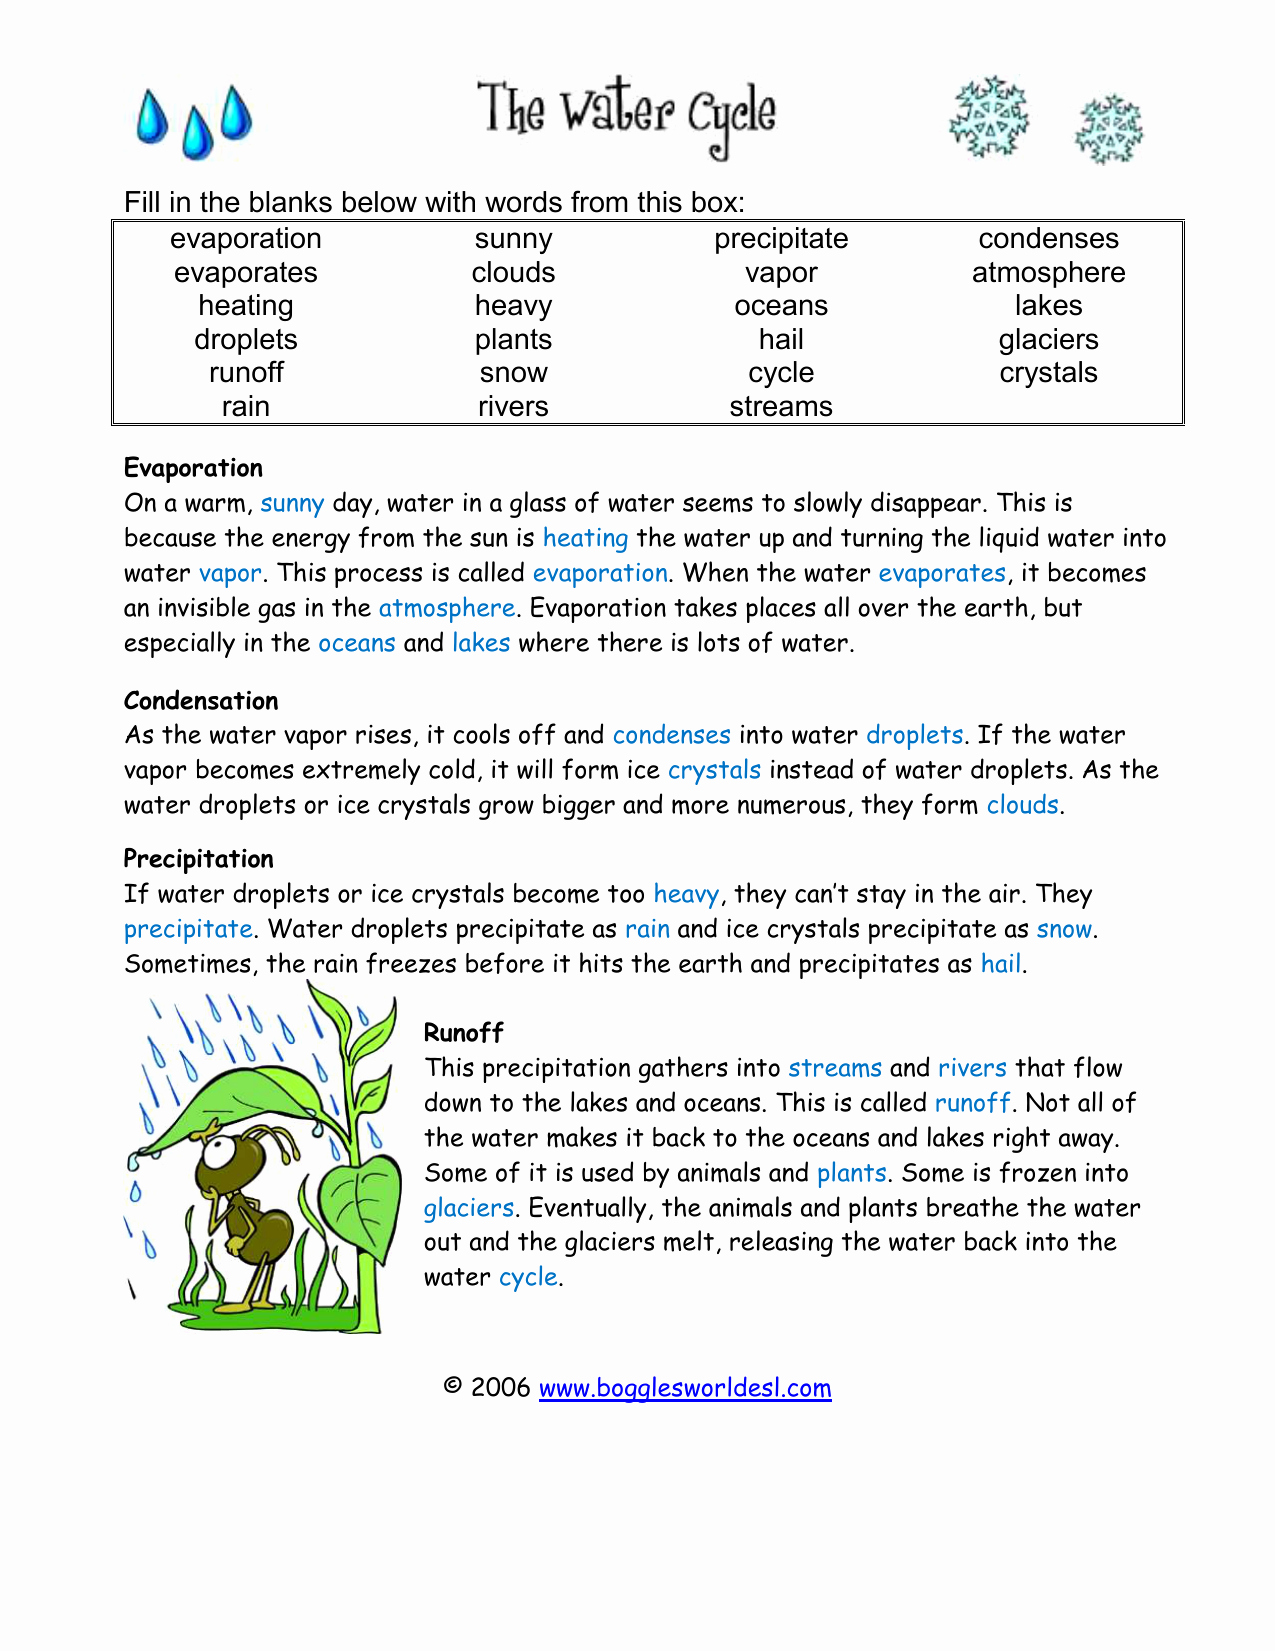 Water Cycle Worksheet Answer Key Elegant Water Cycle Worksheet Answer Key the Best Worksheets Image